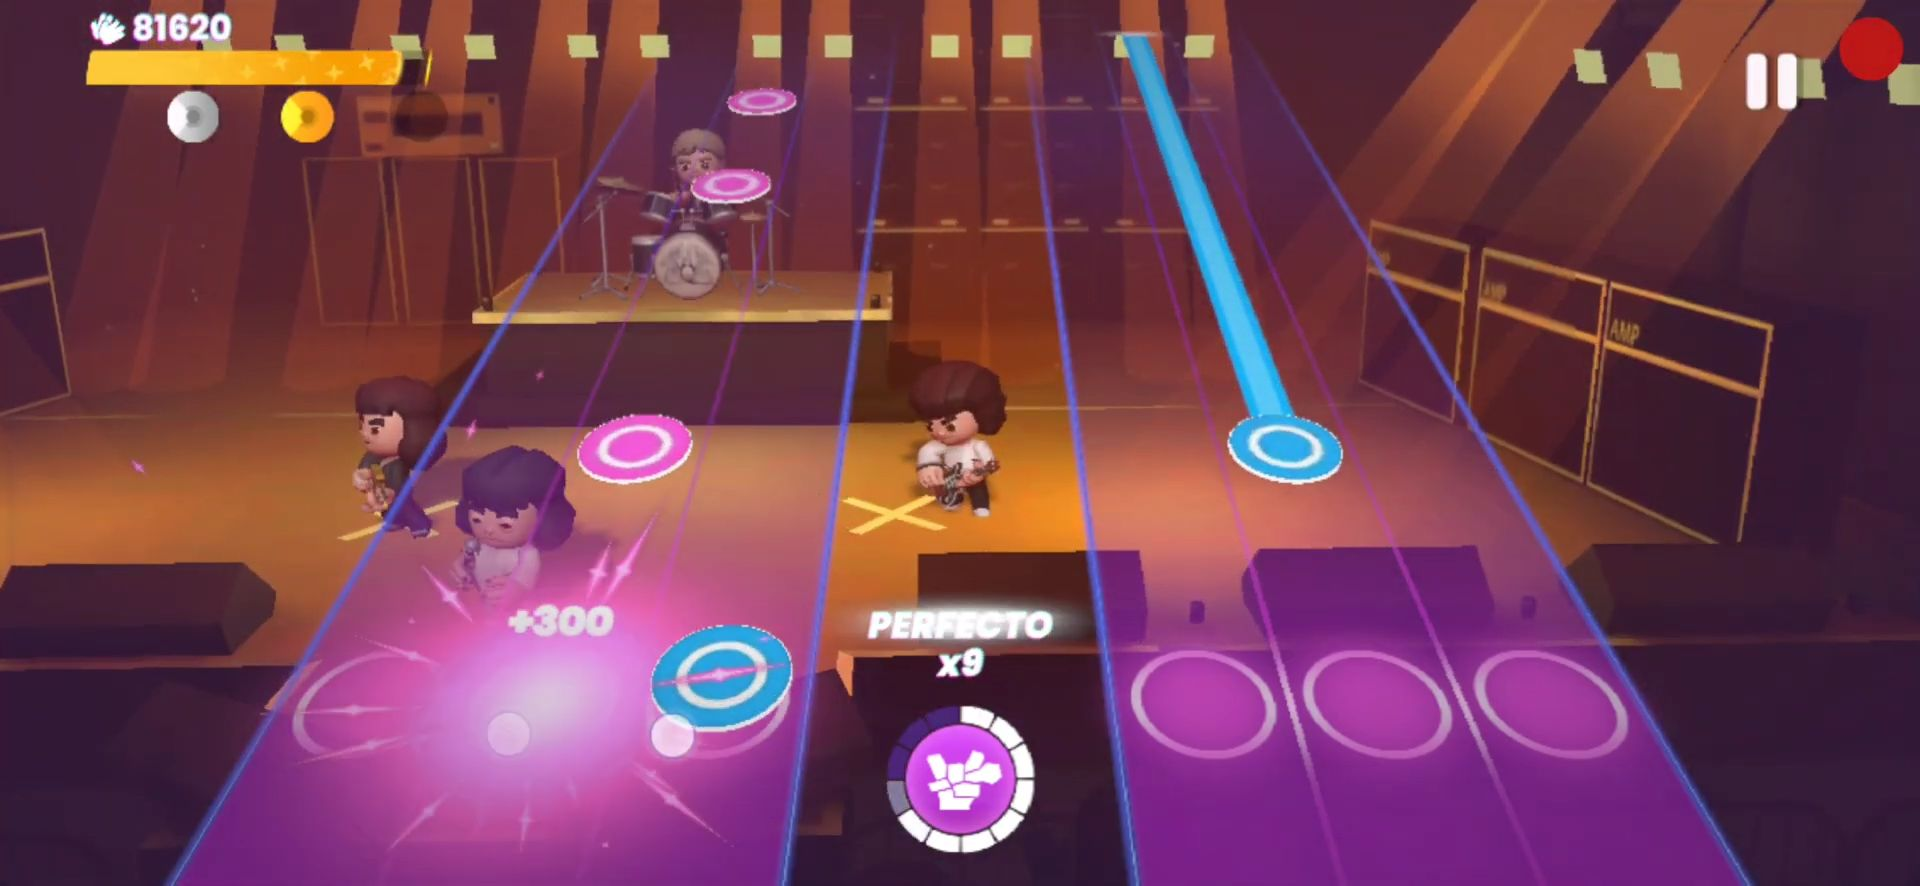 Queen: Rock Tour - The Official Rhythm Game for Android